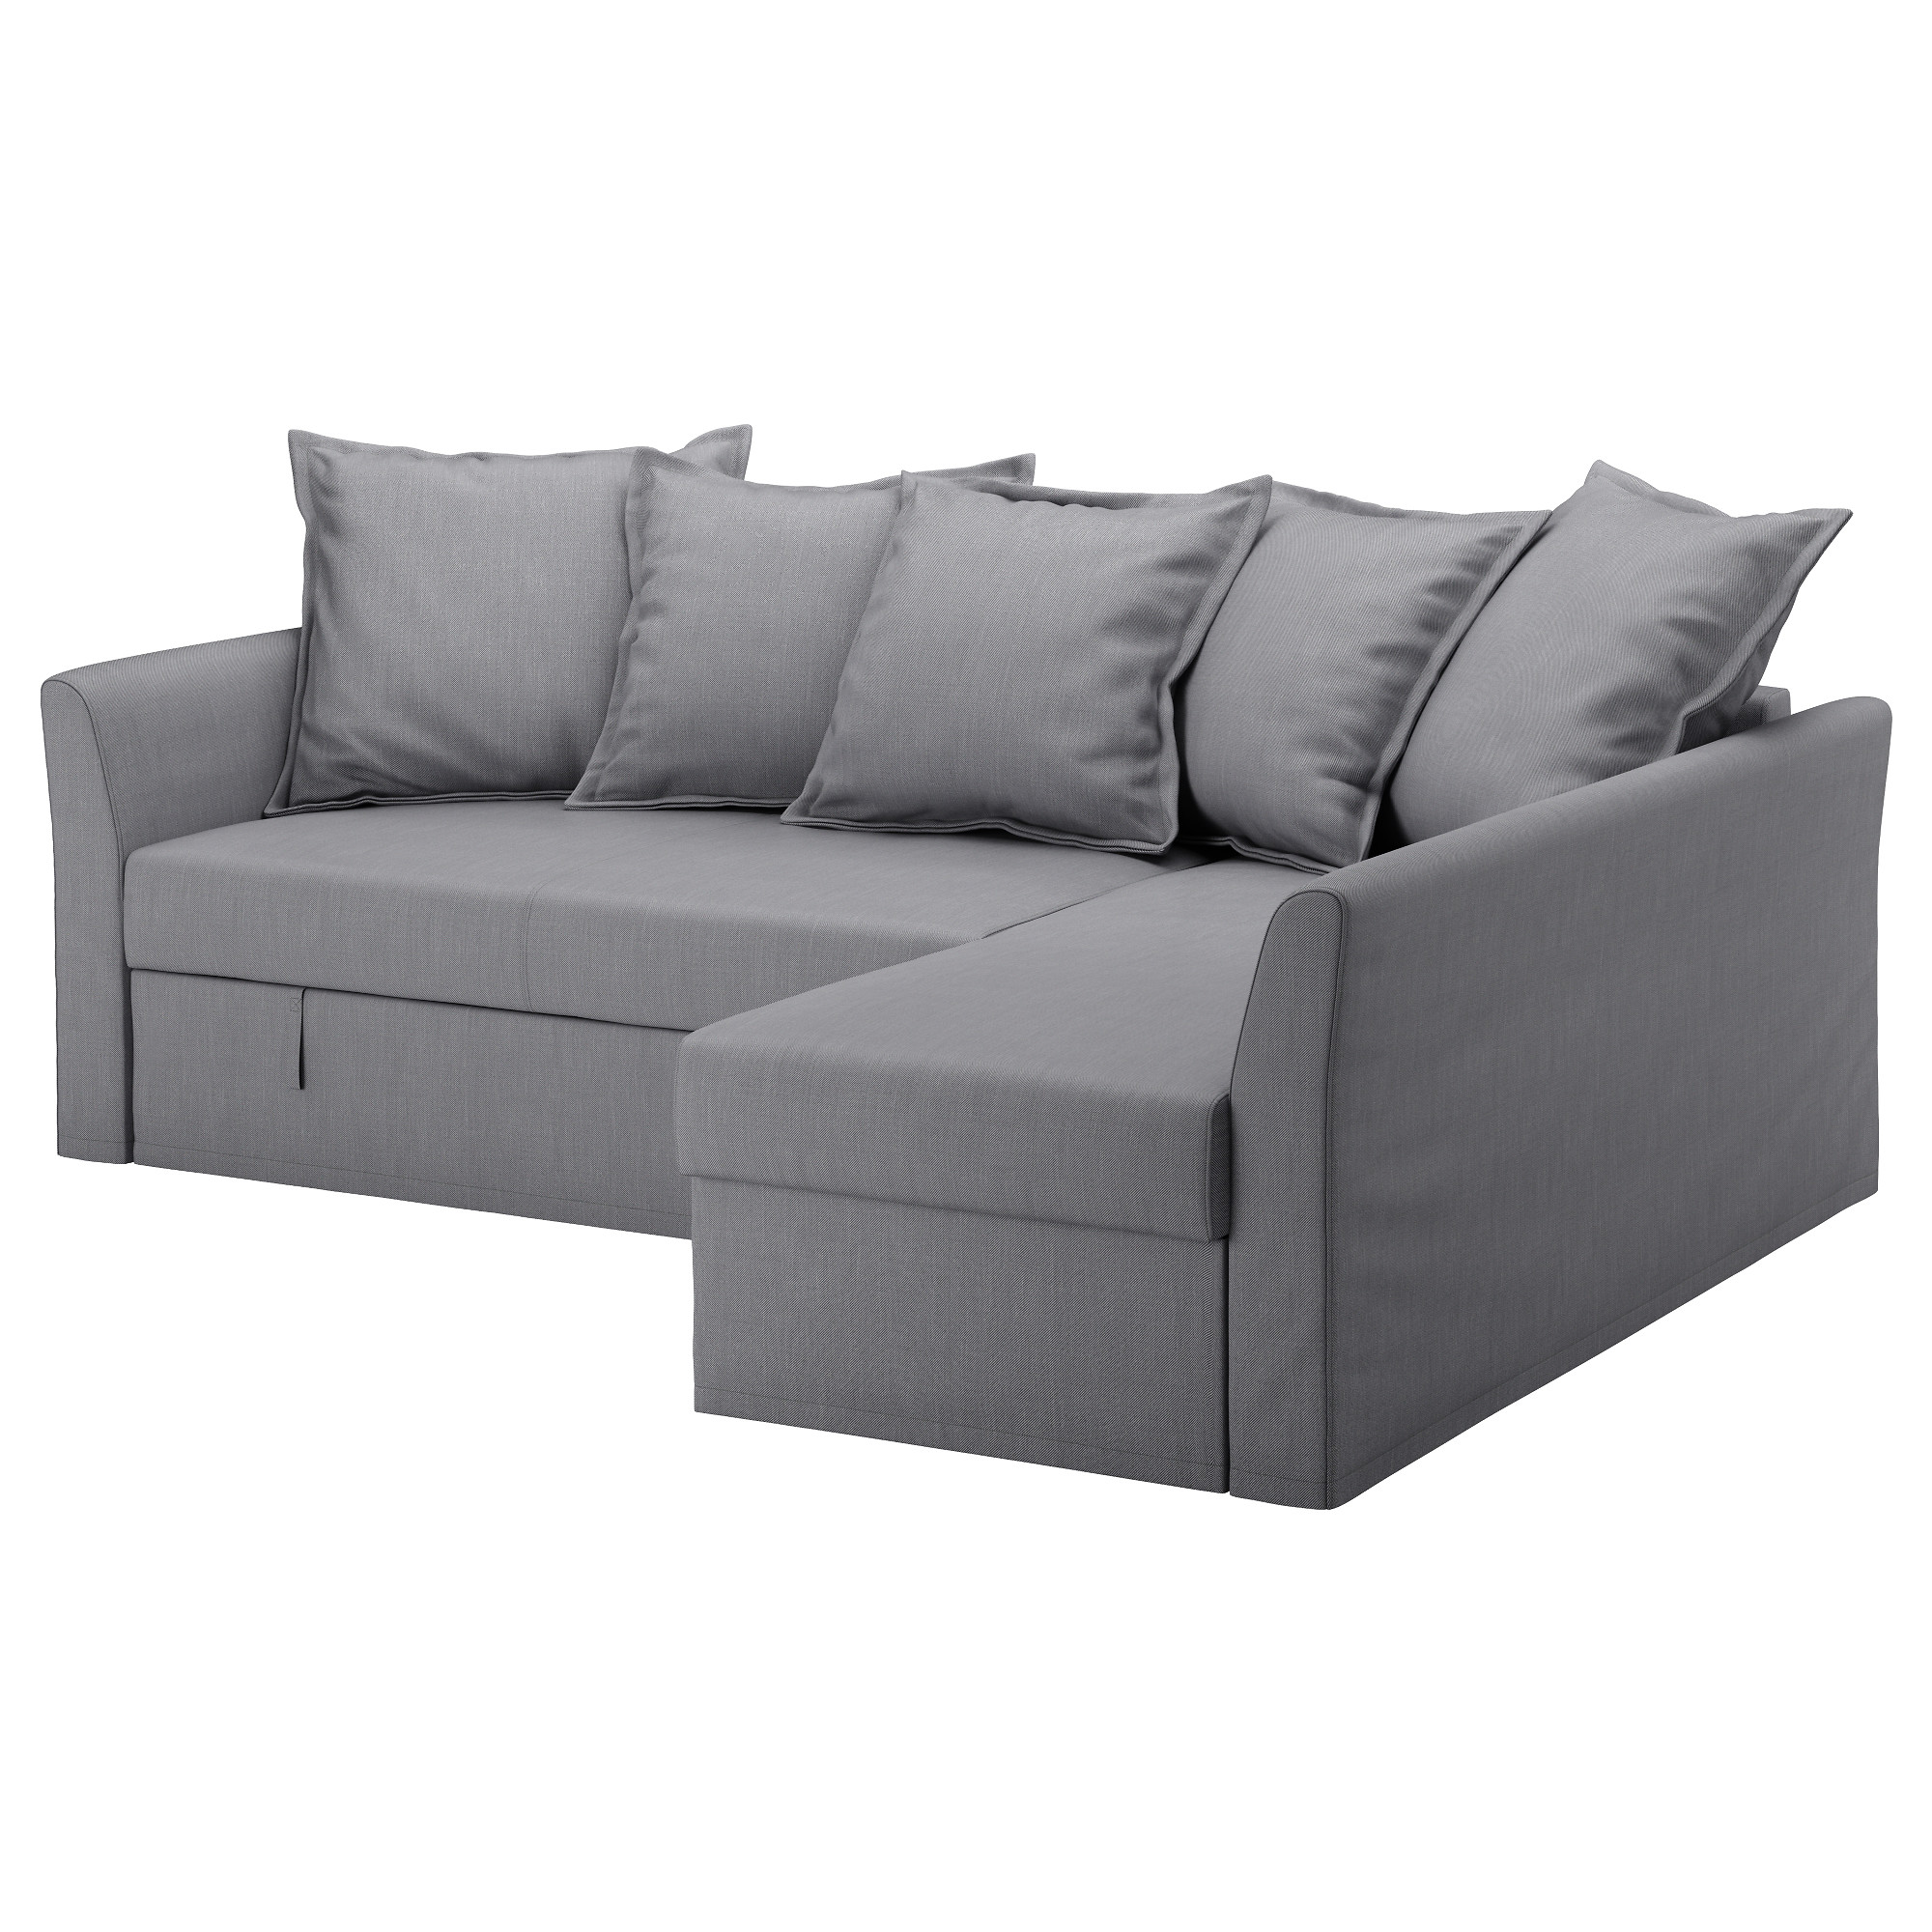 sleeper sofa bed leather sofas uk manufactured holmsund corner nordvalla medium grey chaise